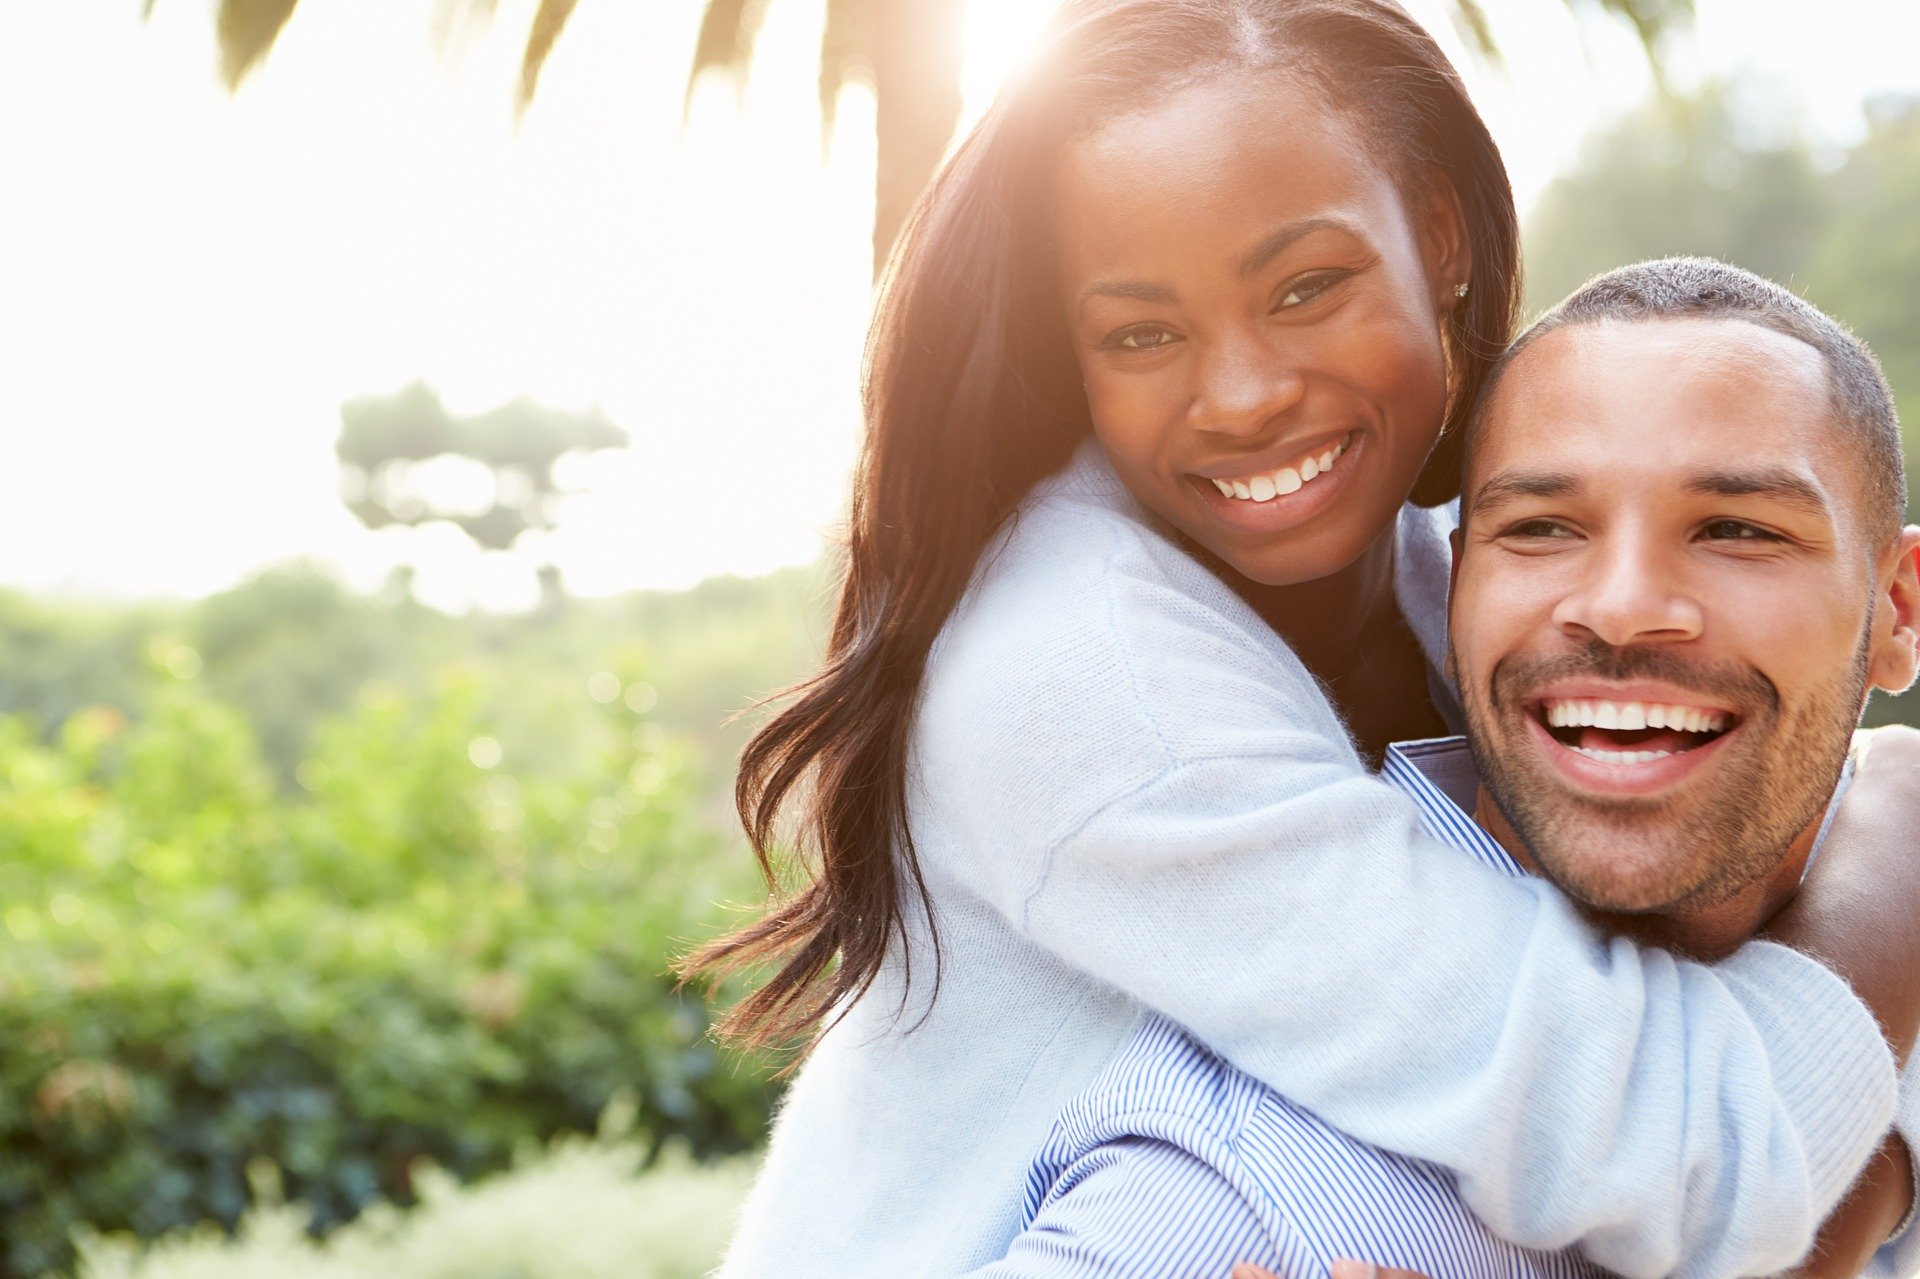 Happy Black woman with partner | Queefing informational blog post